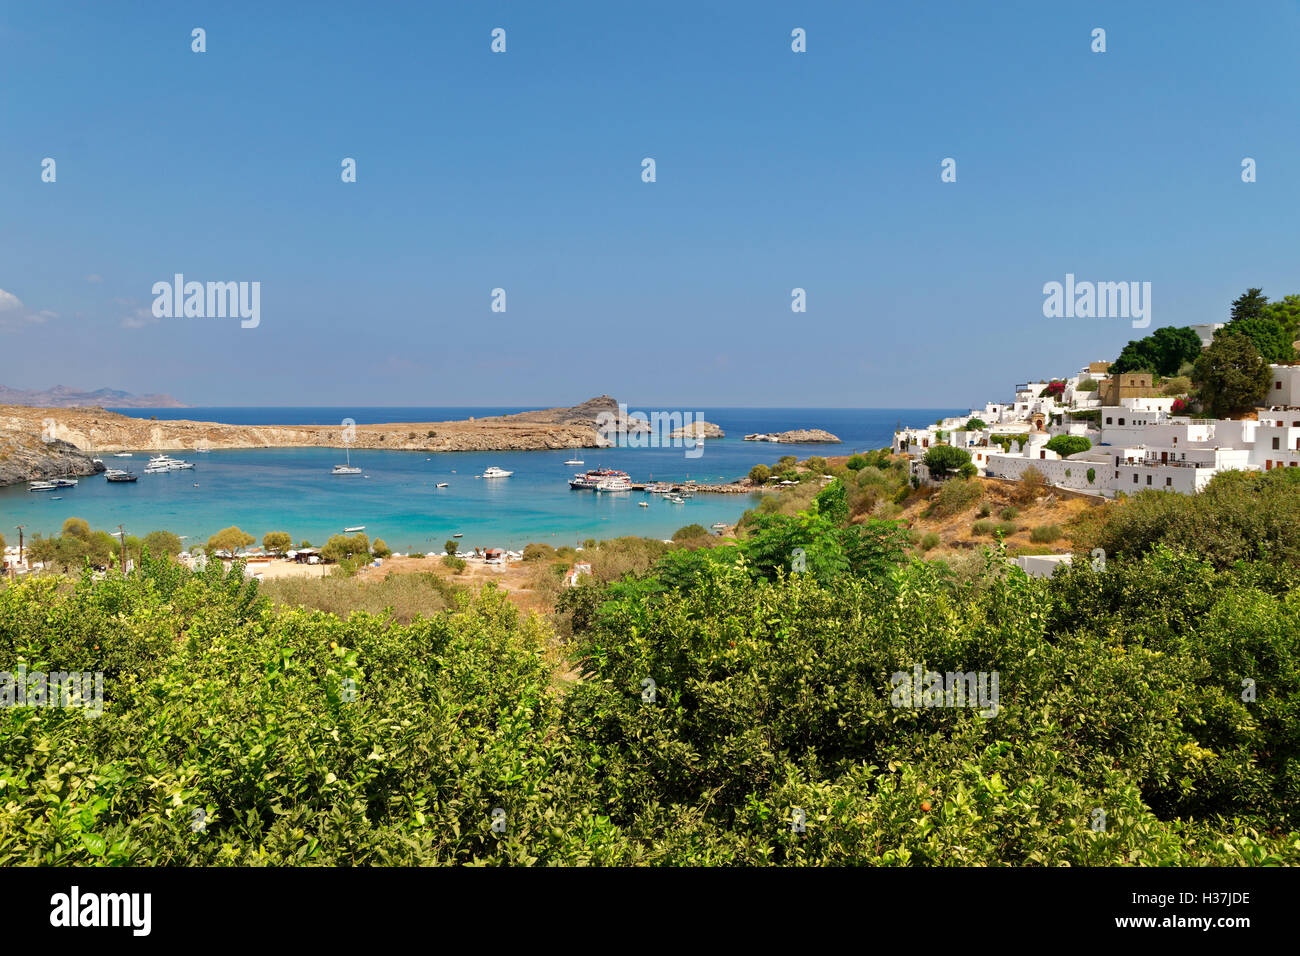 Village of Lindos and beach on the south east coast of Rhodes Island, Dodecanese Island group, Greece. - Stock Image